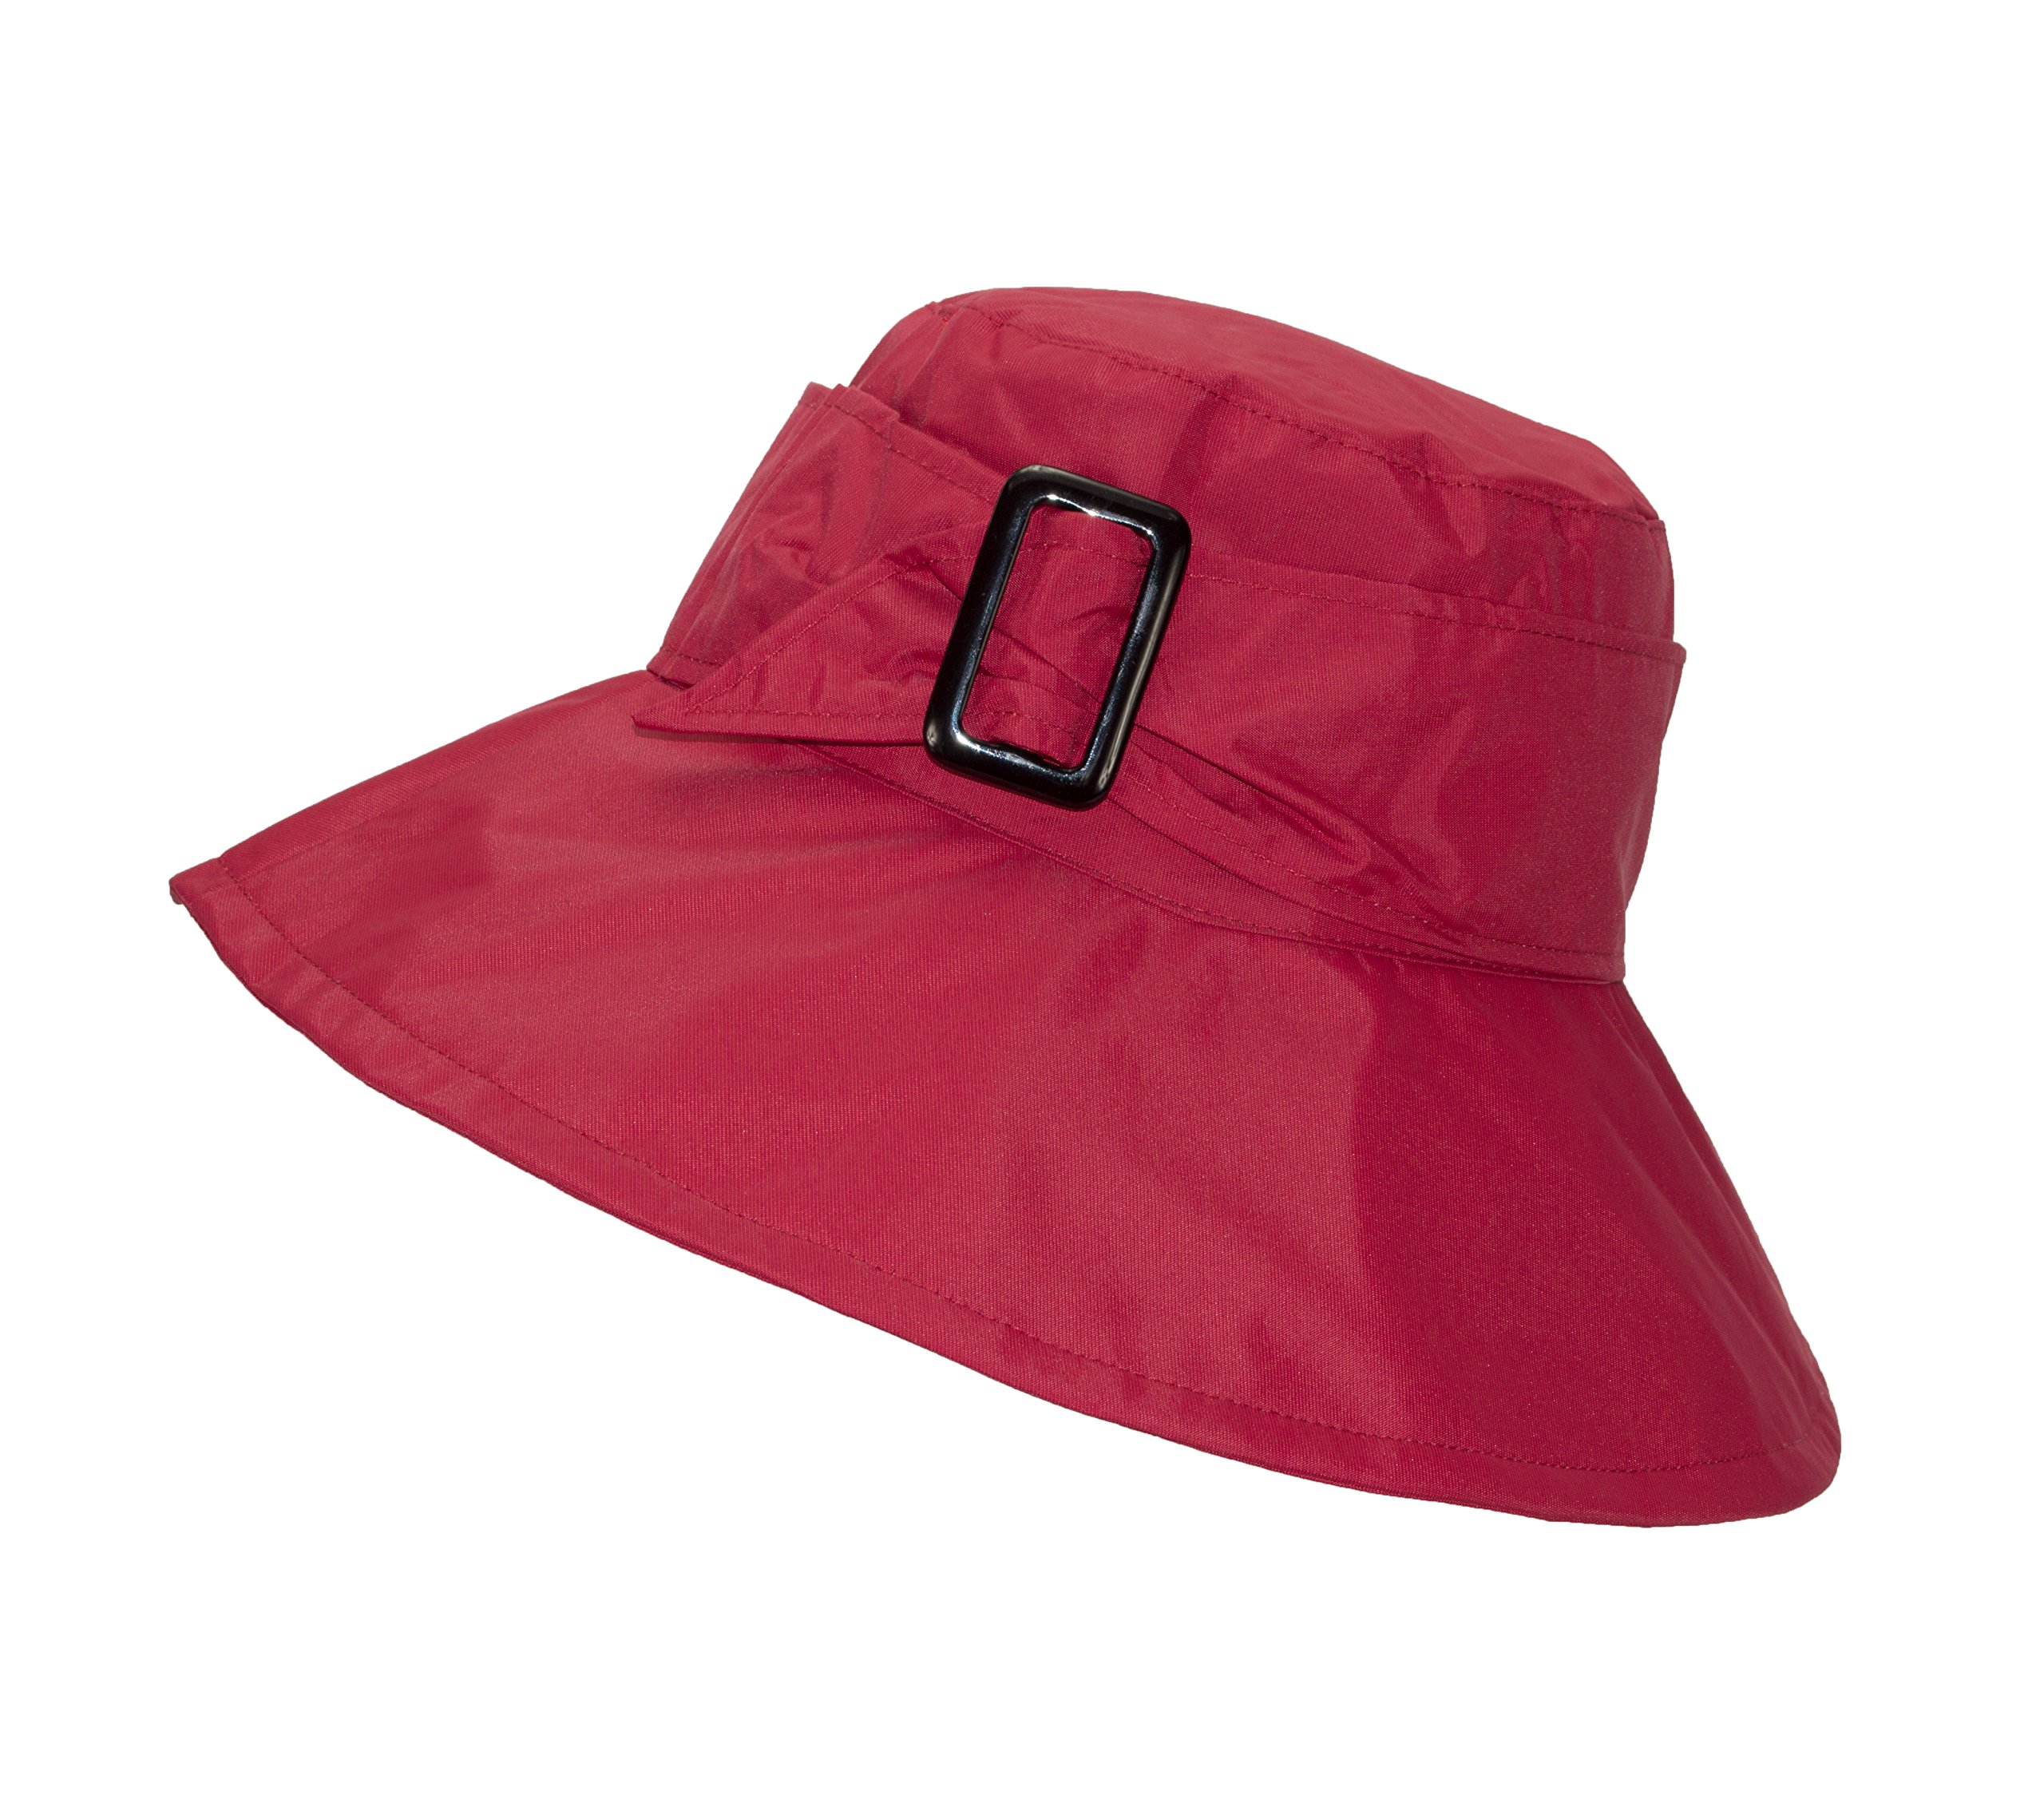 FLH Cute Bucket Rain Hat w/Buckle Accent, 3.5 inch Wide Brim, Roll-Up Packable (Red)